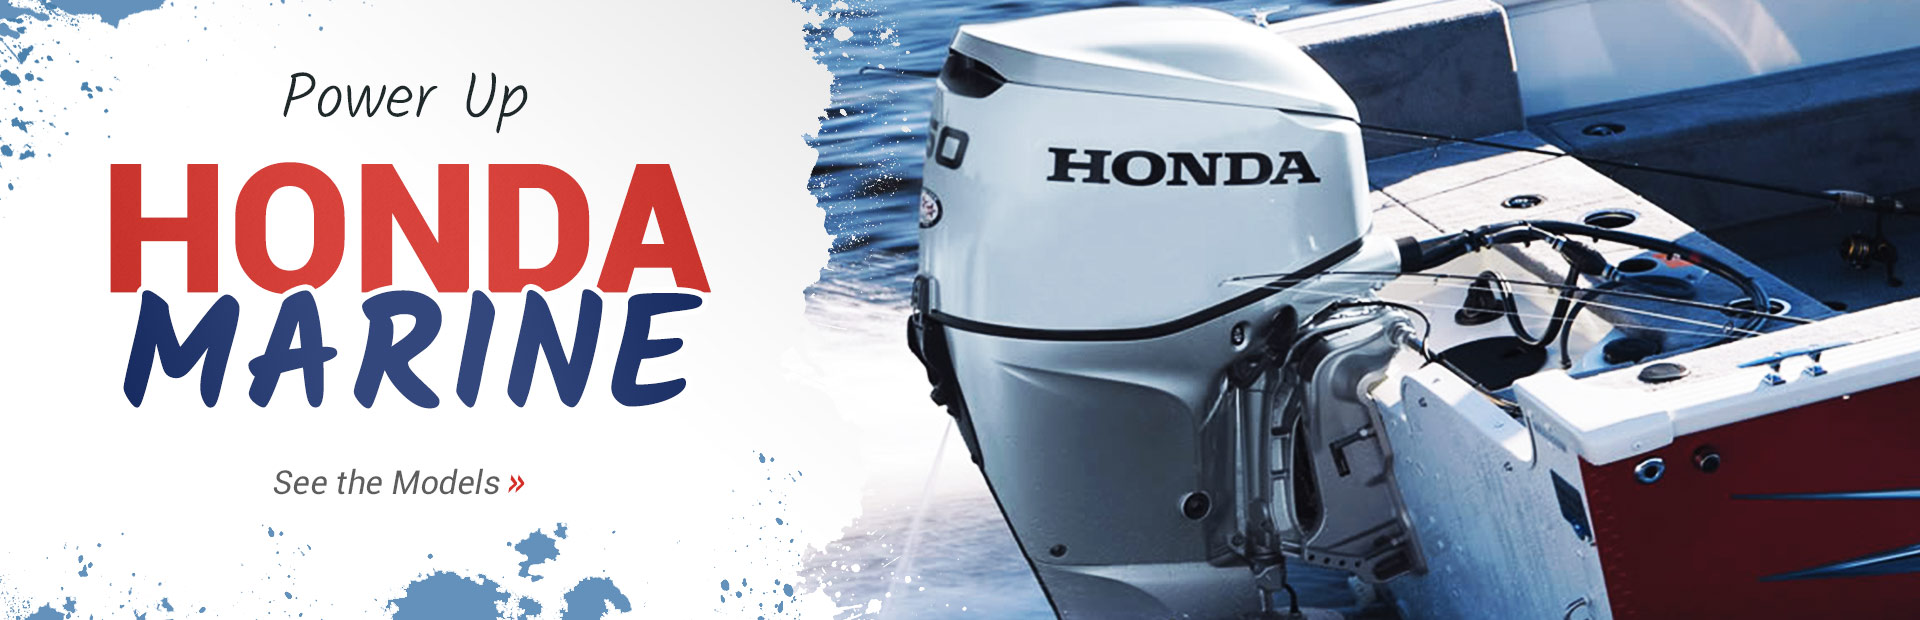 Honda Marine: Click here to view the models.